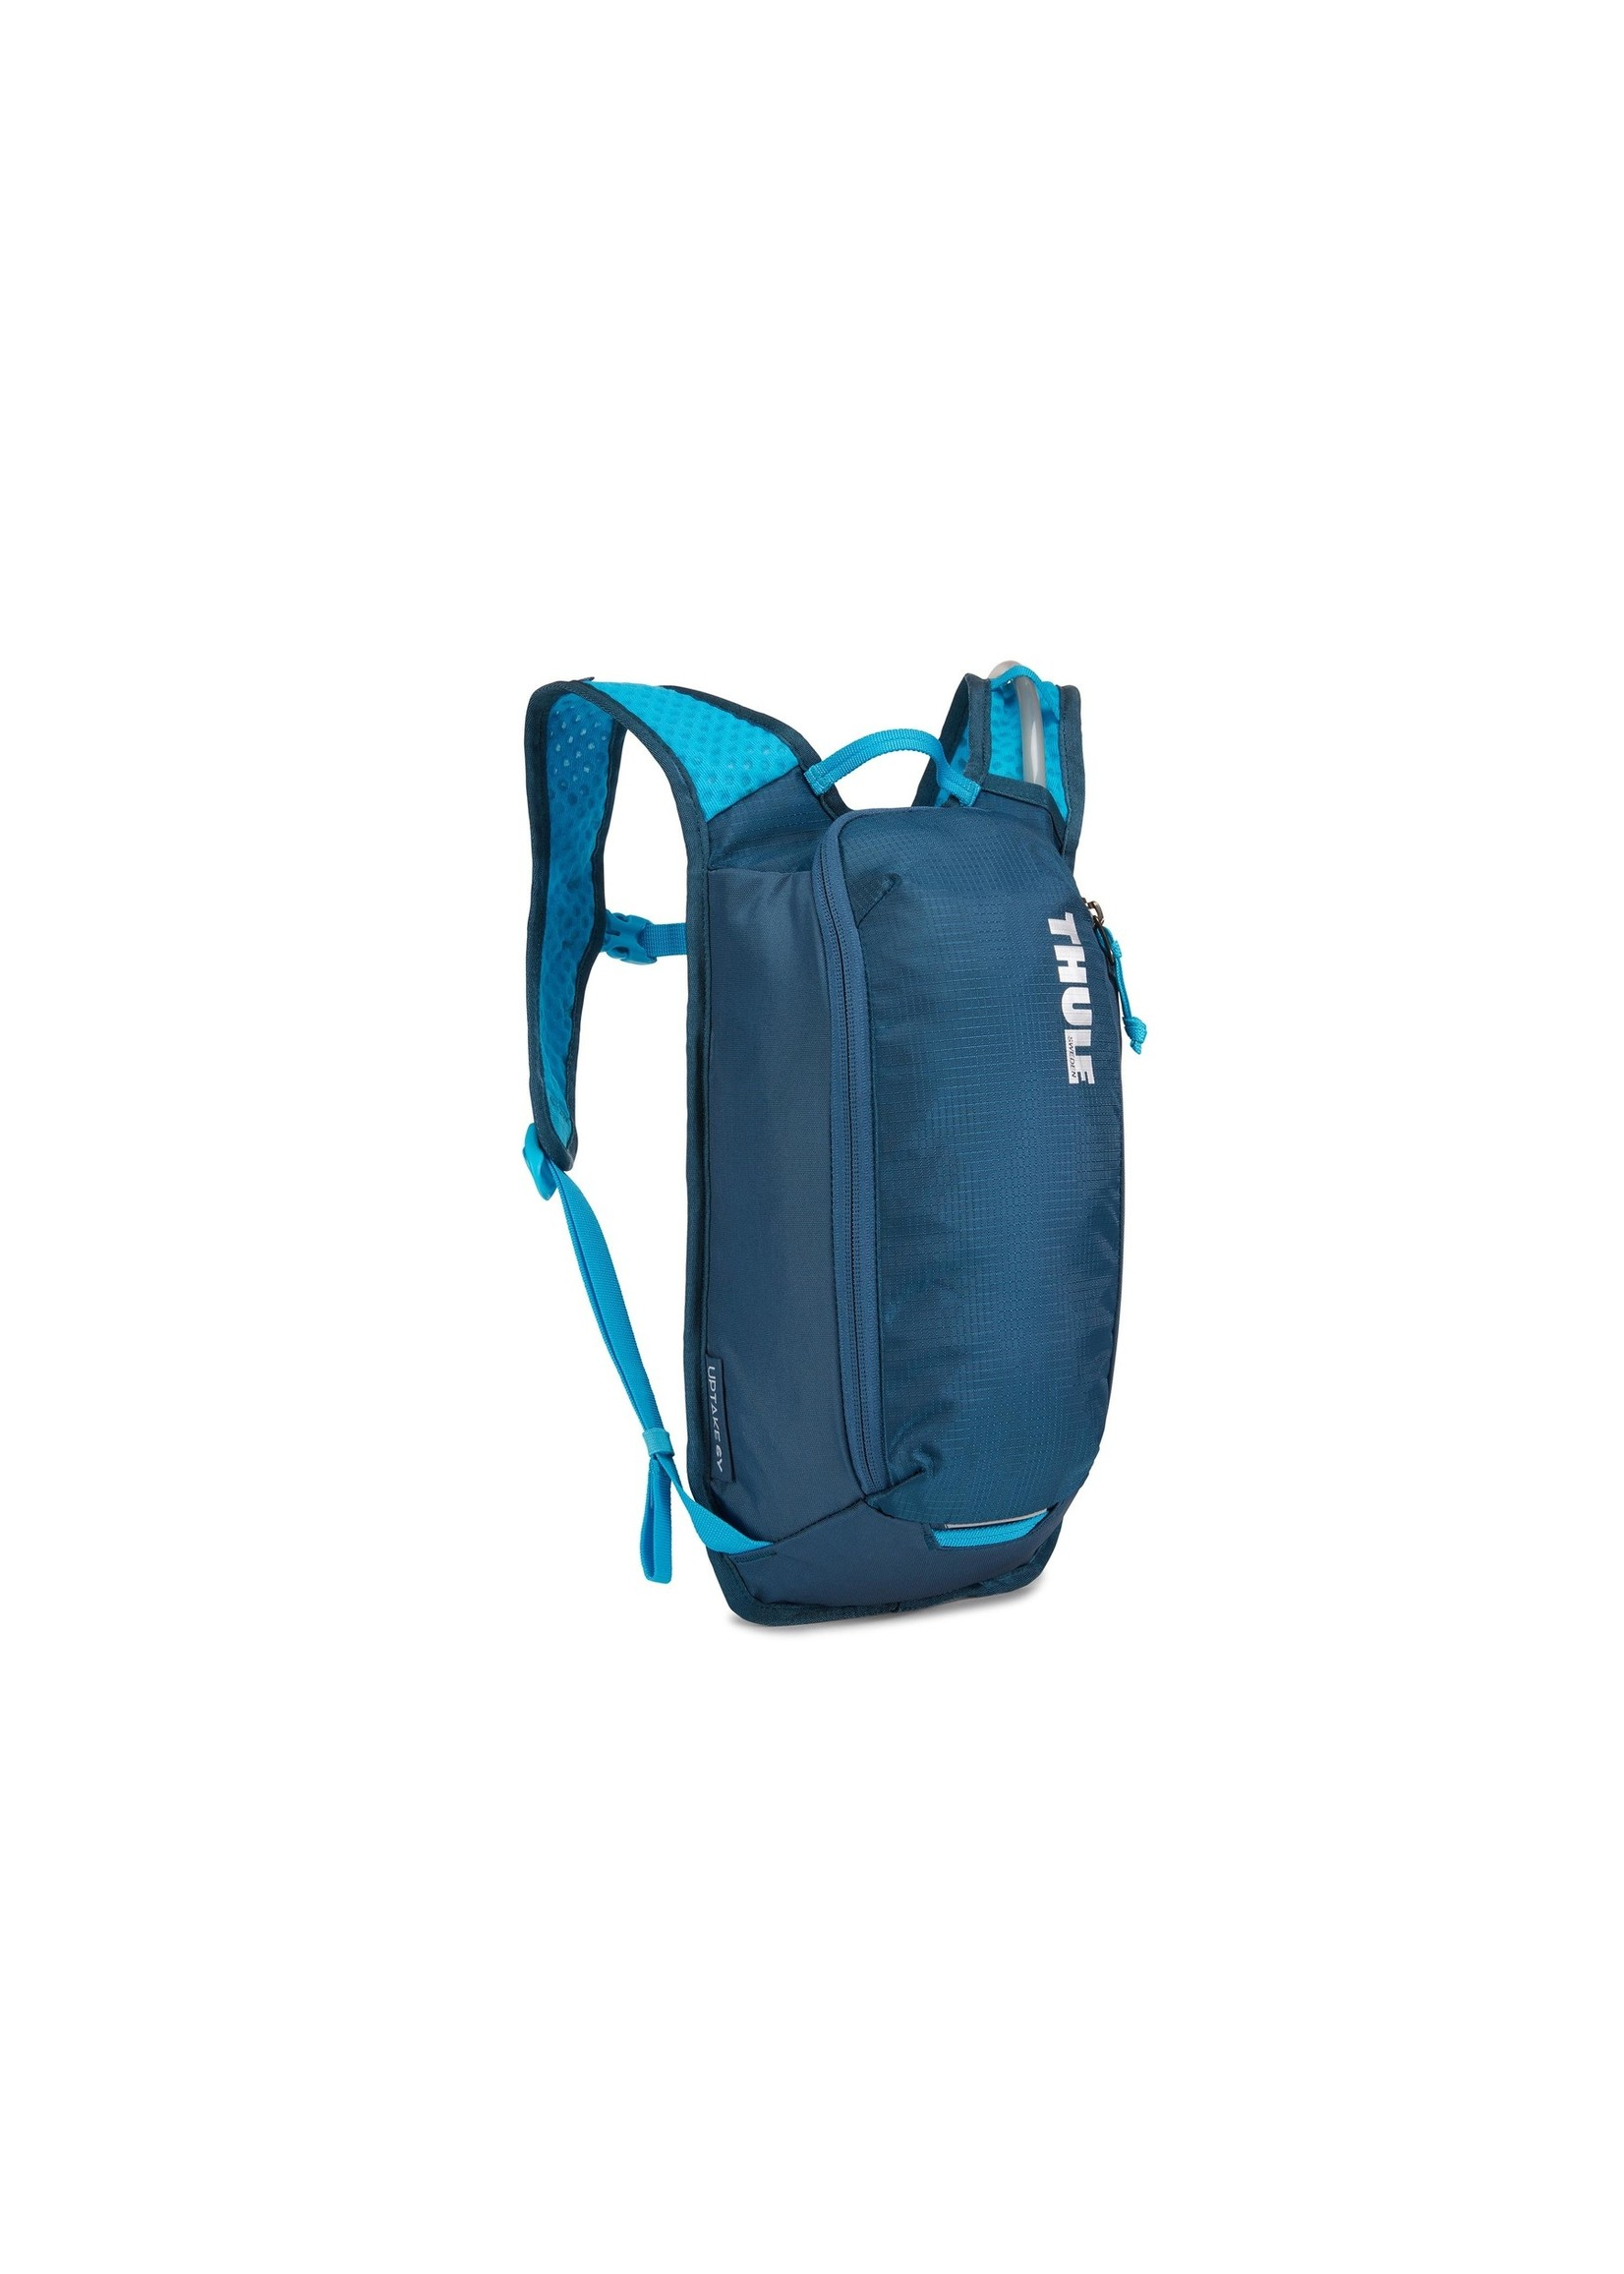 THULE UPTAKE 6L YOUTH HYDRATION PACK